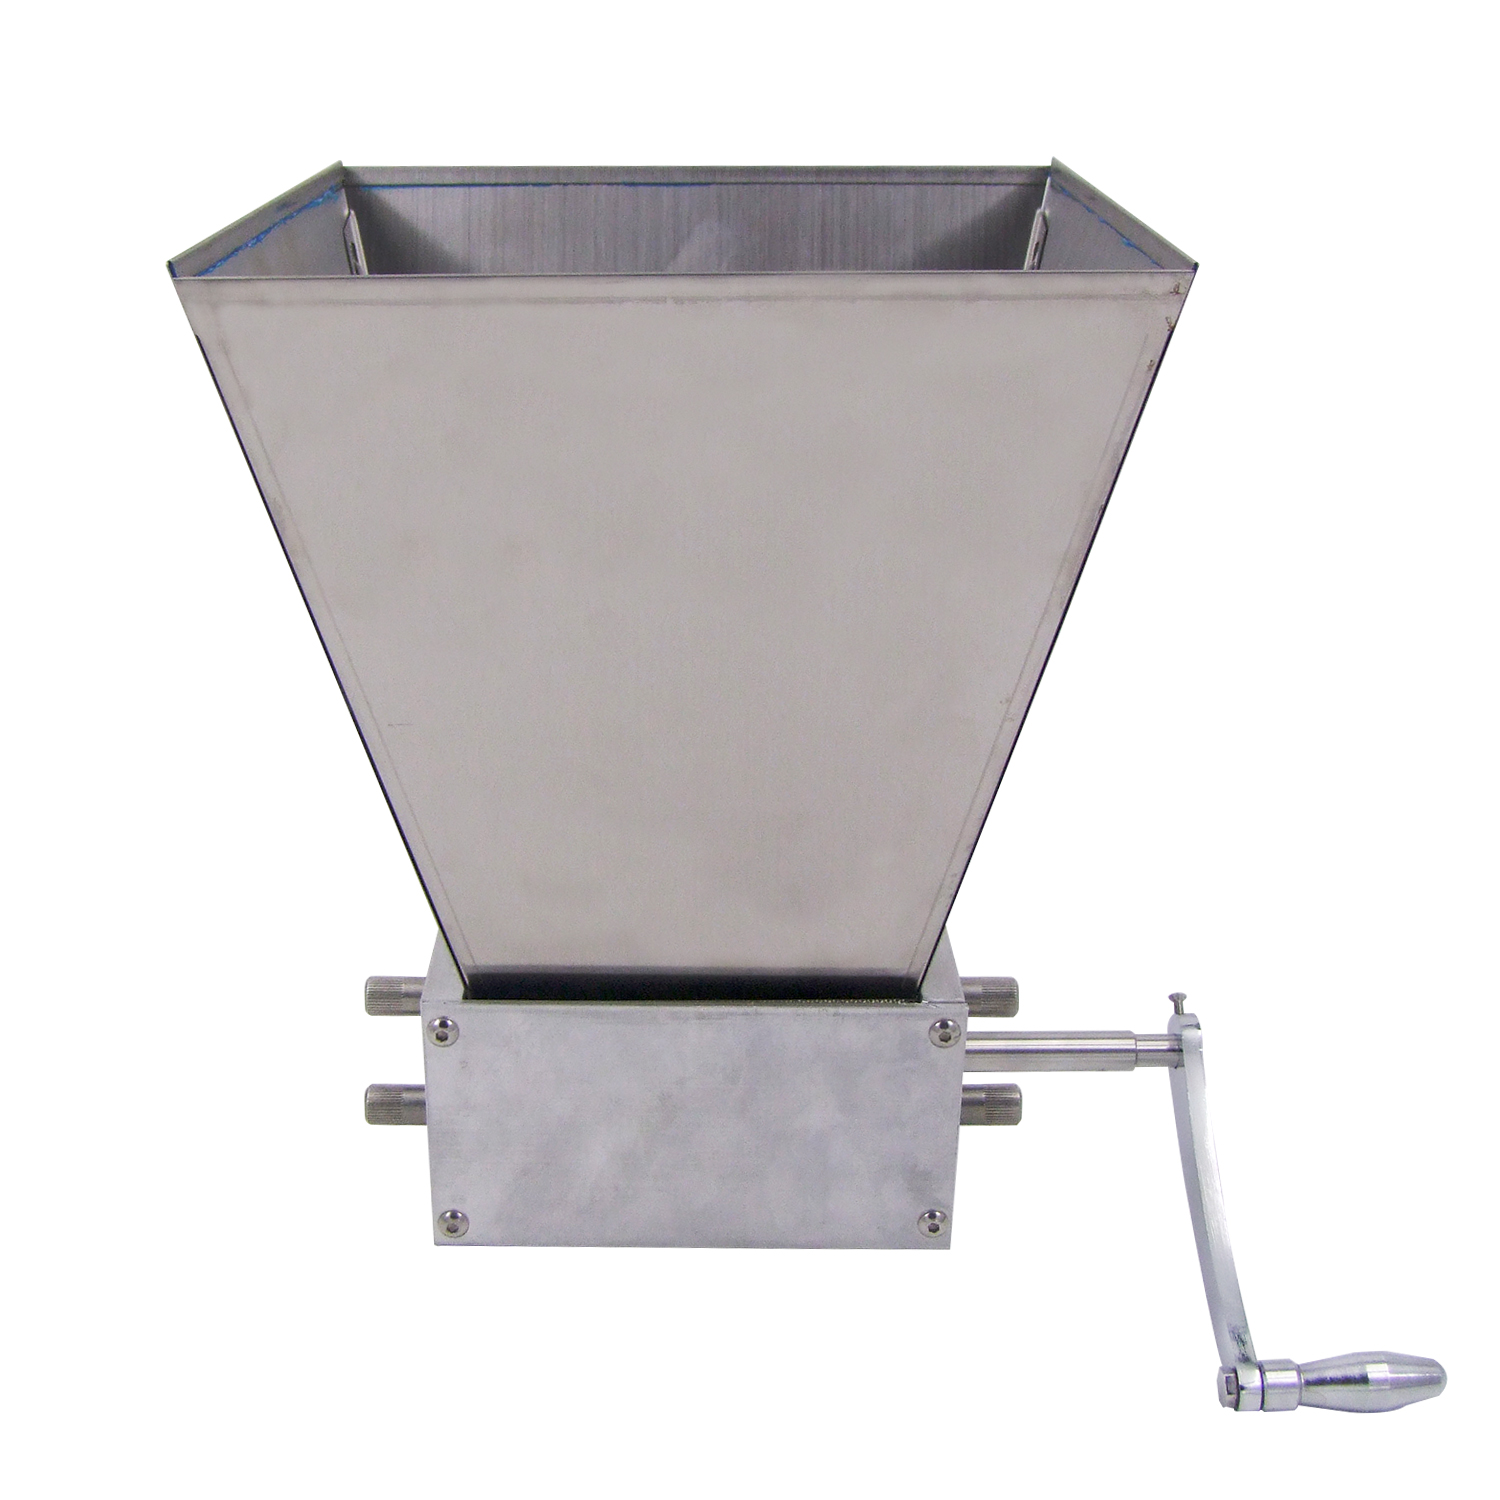 Details about HFS(R) Grain Mill with 11 lb  Hopper and 3 Rollers, Three  Roller Malt Mill